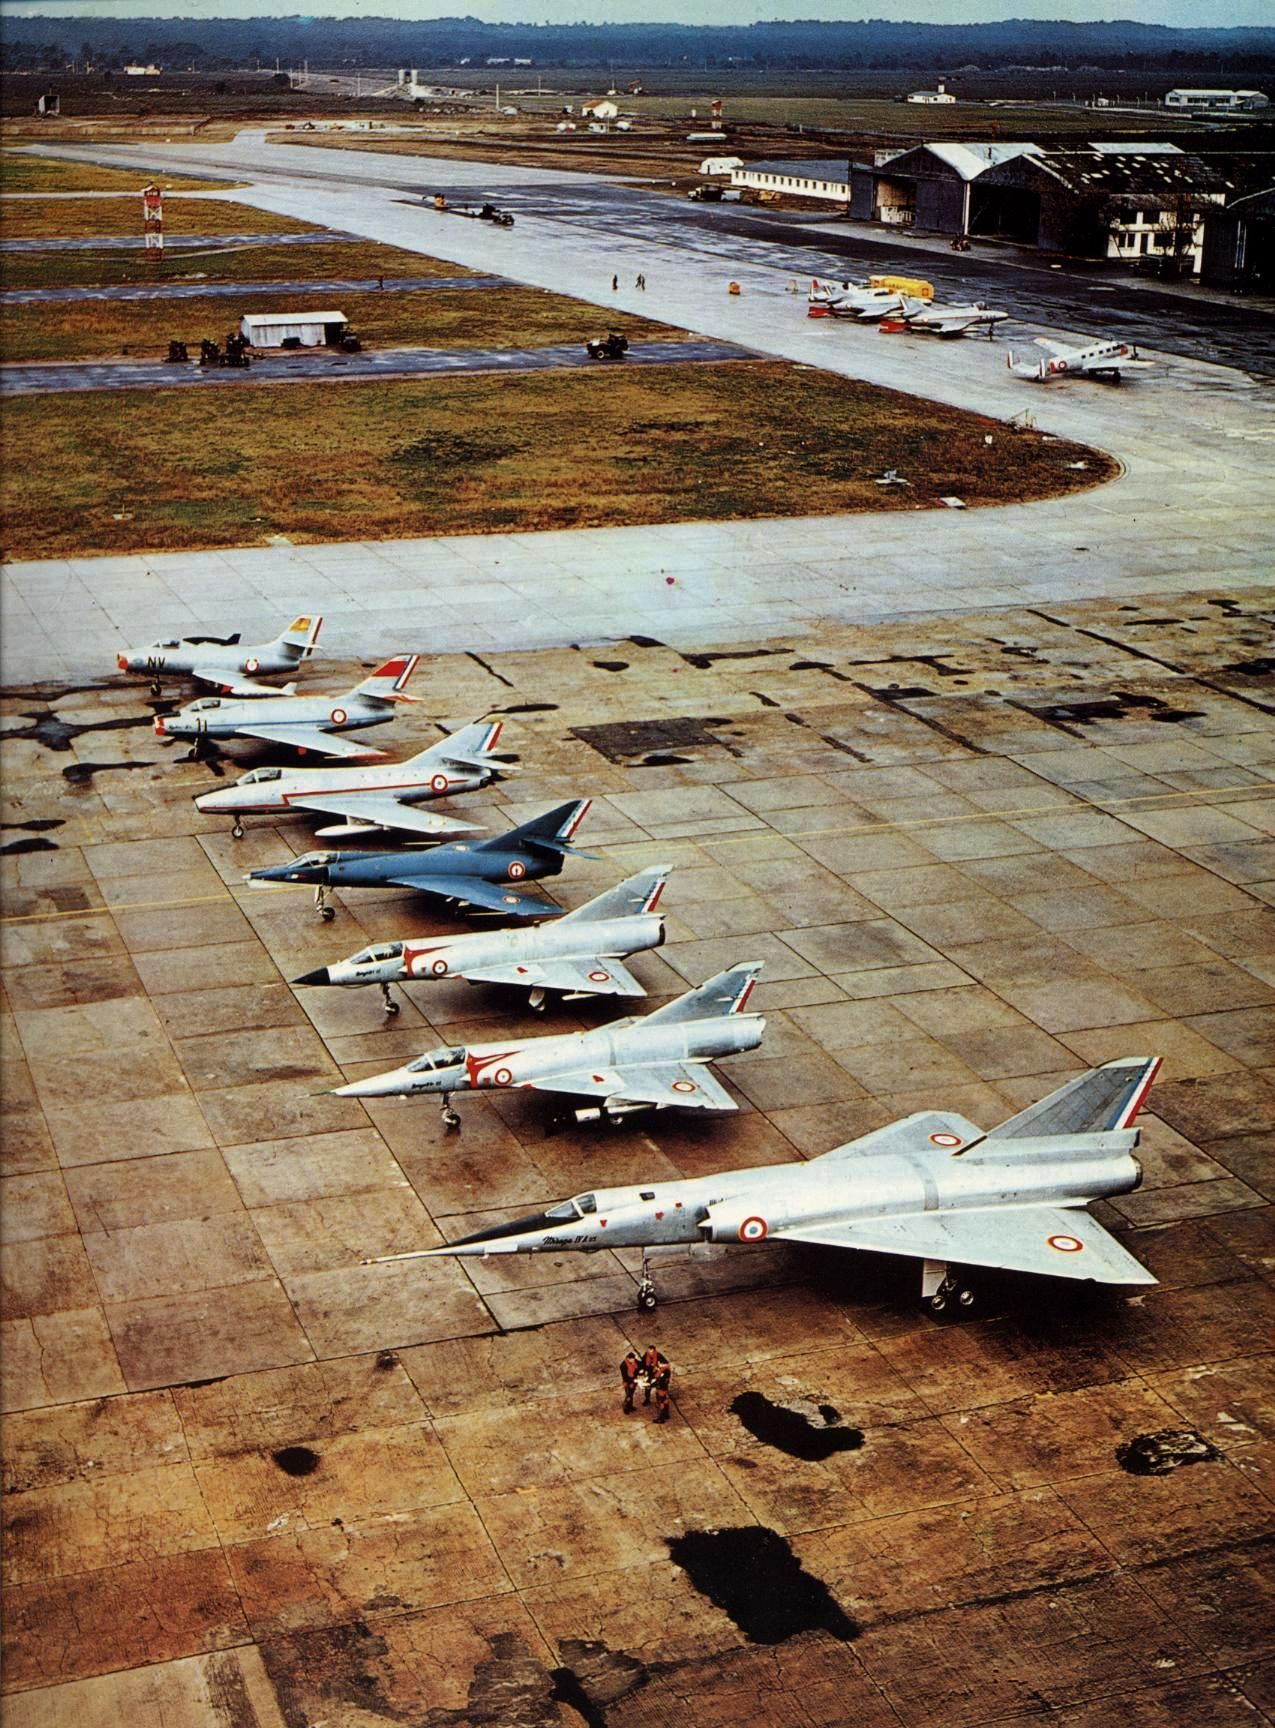 Dassault family in the 70 s Ouragan Mystere Super Mystere Etendard IV Mirage